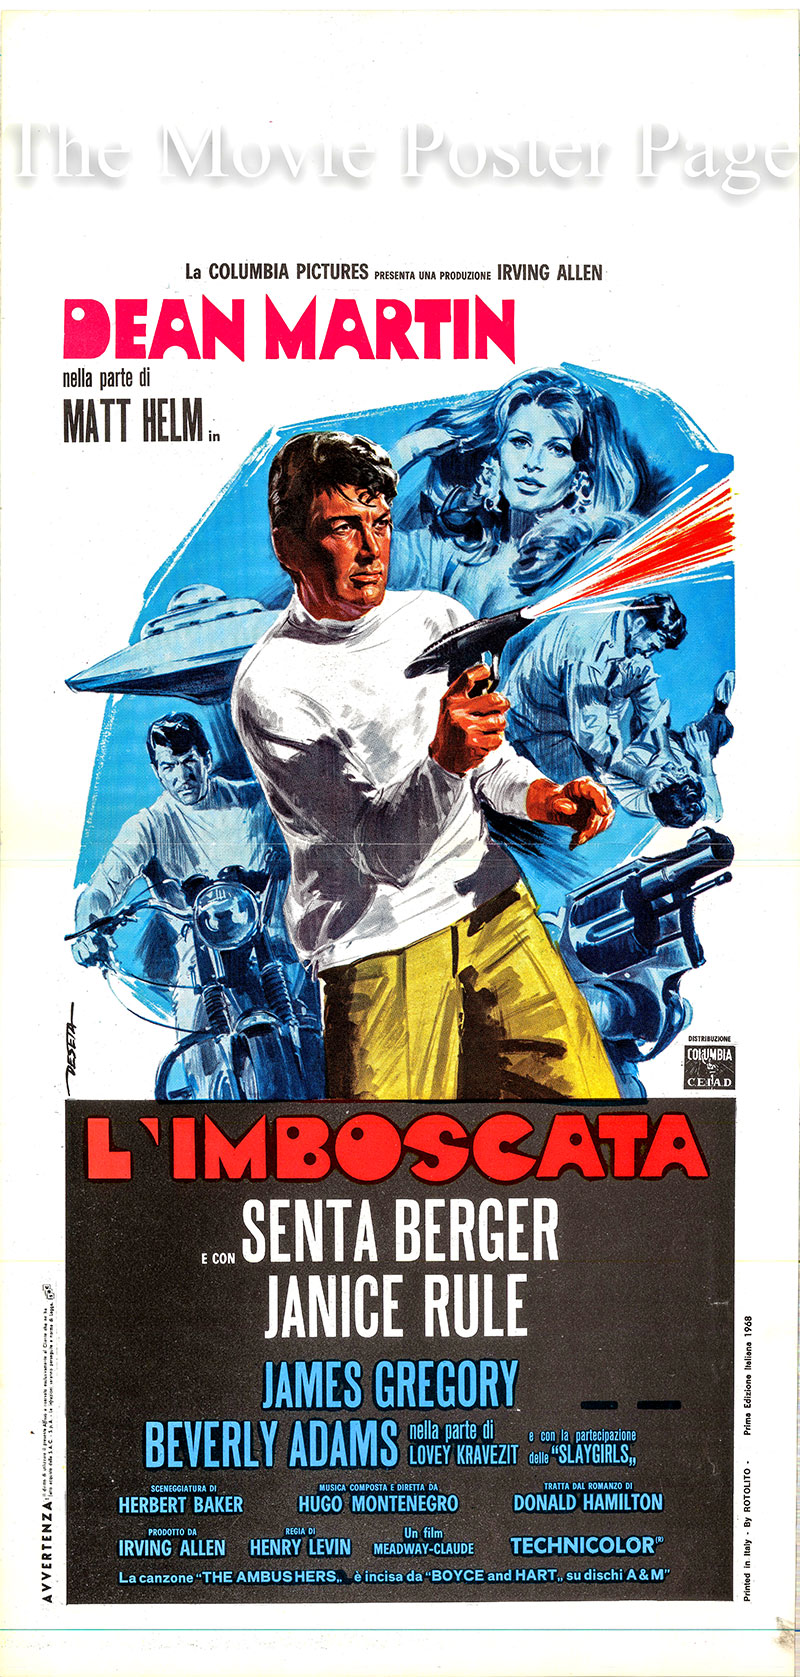 Pictured is an Italian Locandina promotional poster for the 1967 Henry Levin film The Ambushers, starring Dean Martin as agent Matt Helm.